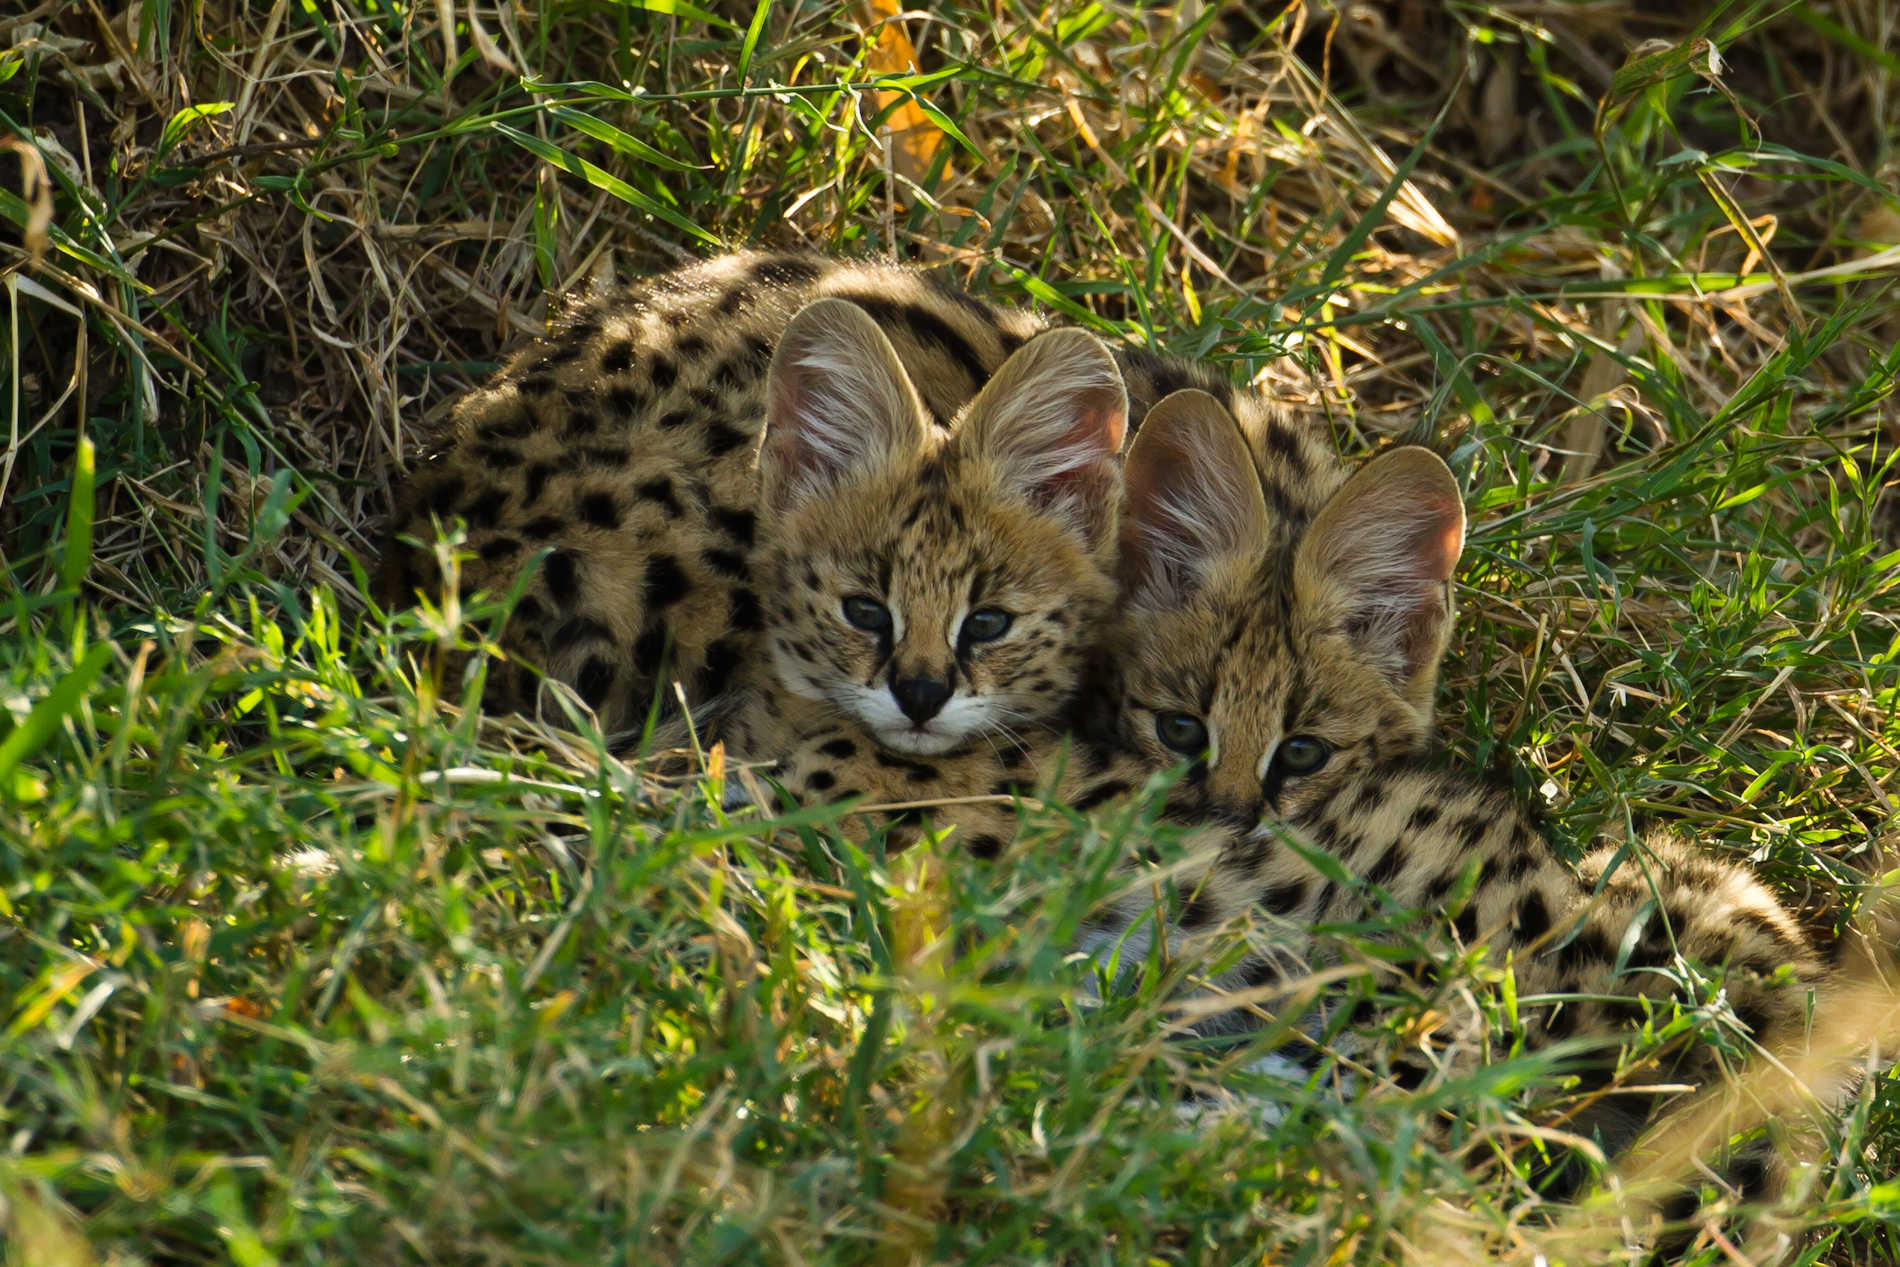 Servals in the Masai Mara (Image by Paul Goldstein)